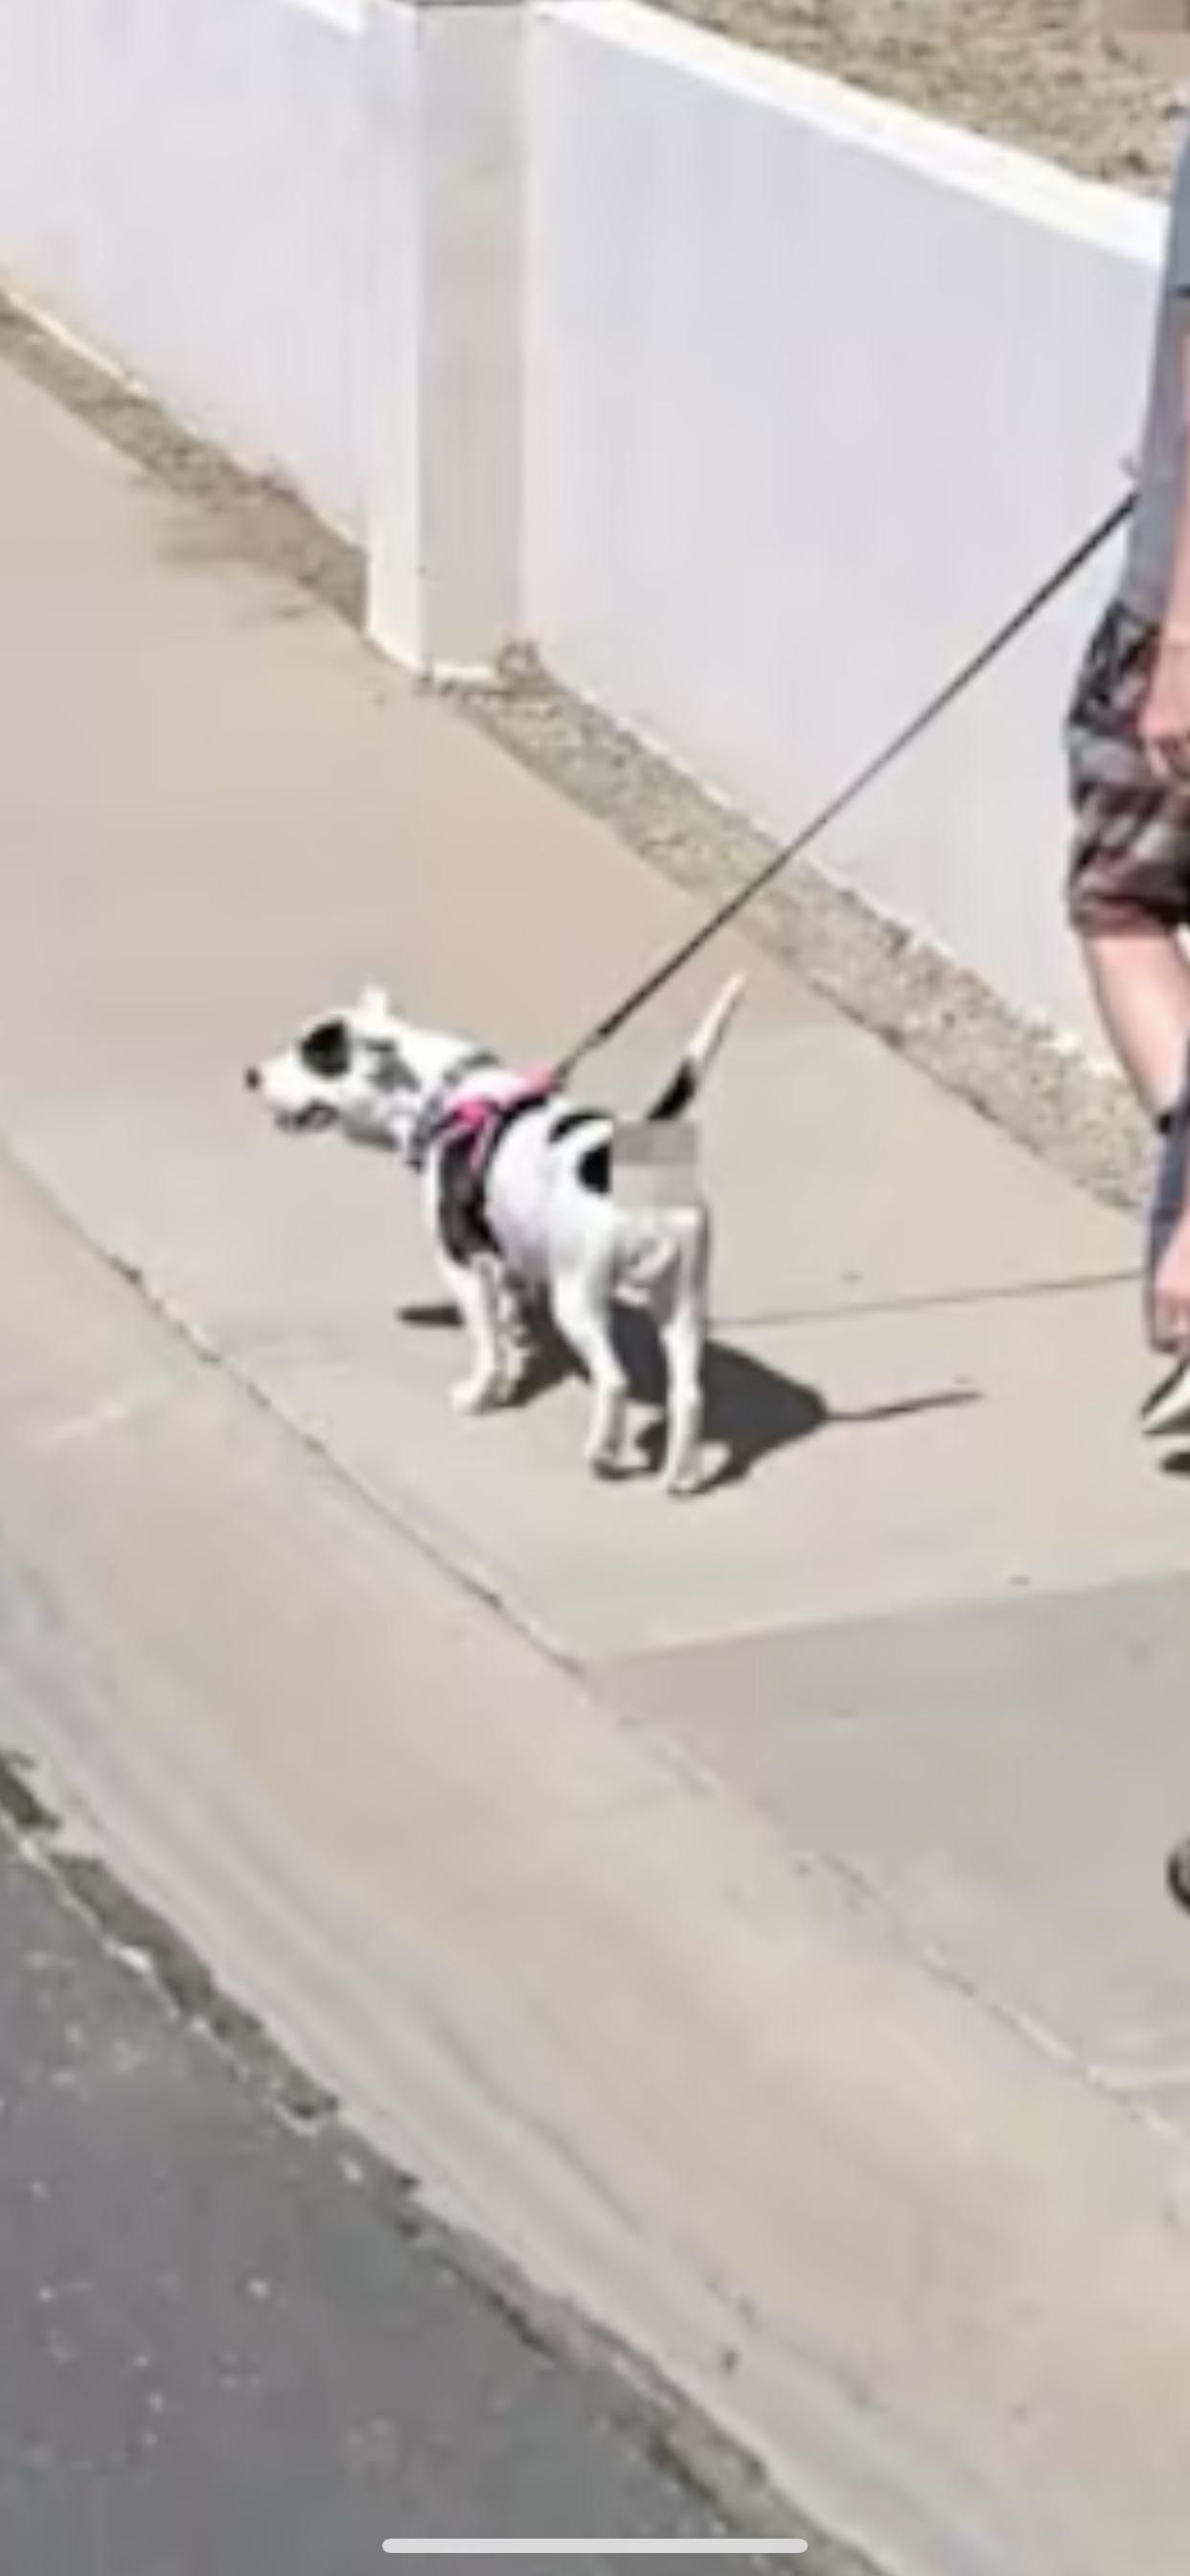 Made it onto Apple Map's new street view feature. They were kind enough to blur out my dog's butthole.